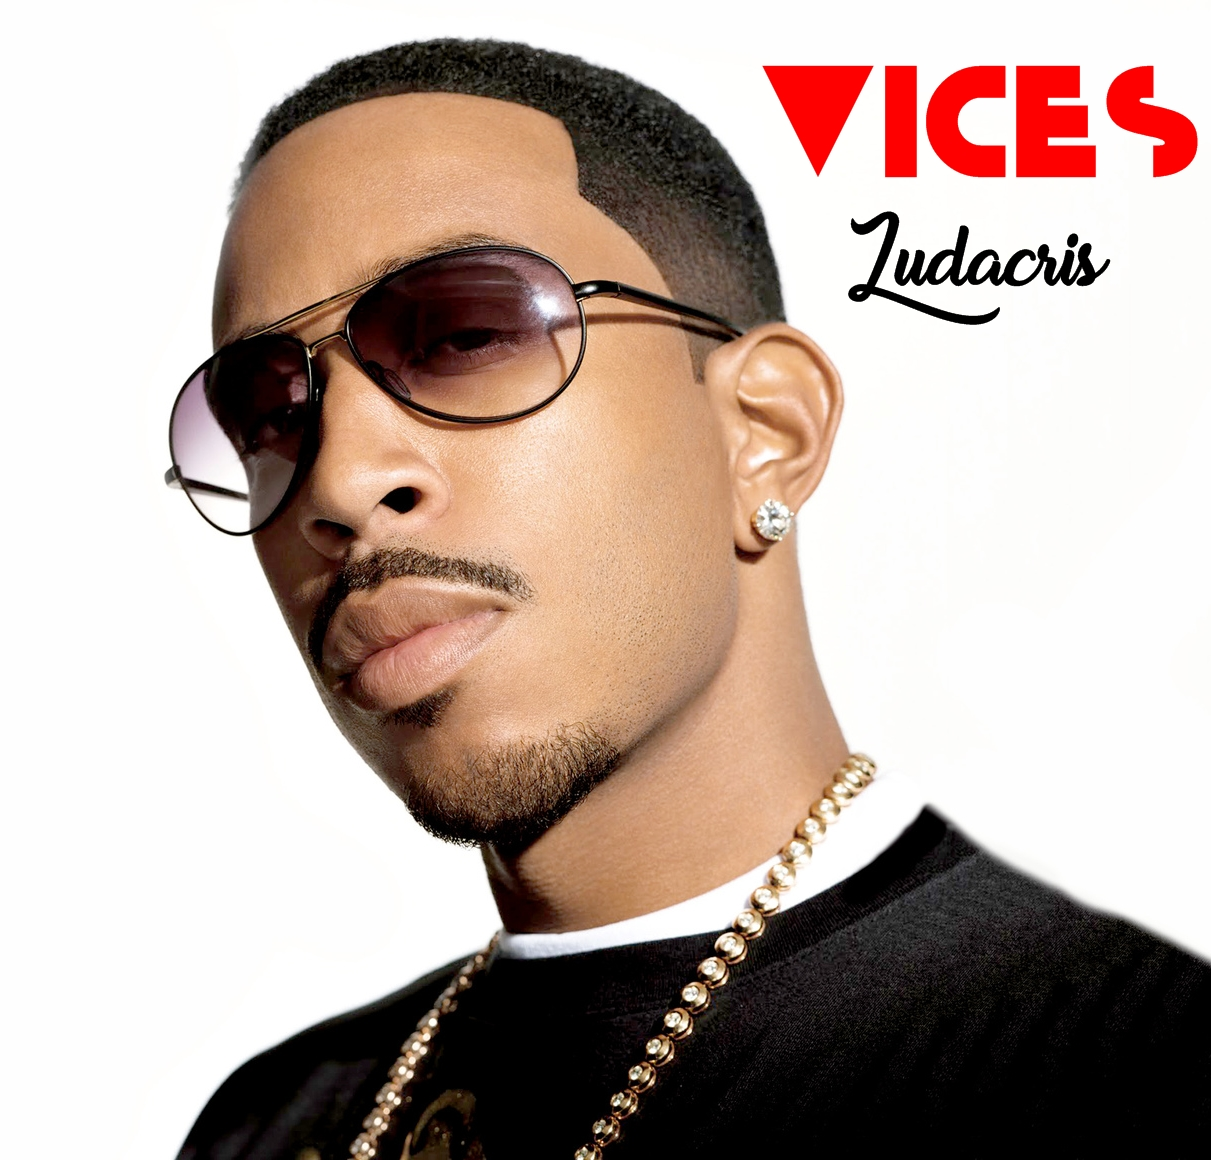 Post Malone Better Now Baixar Mp3: Ludacris - Vices [Exclusive] (2017) [Download]